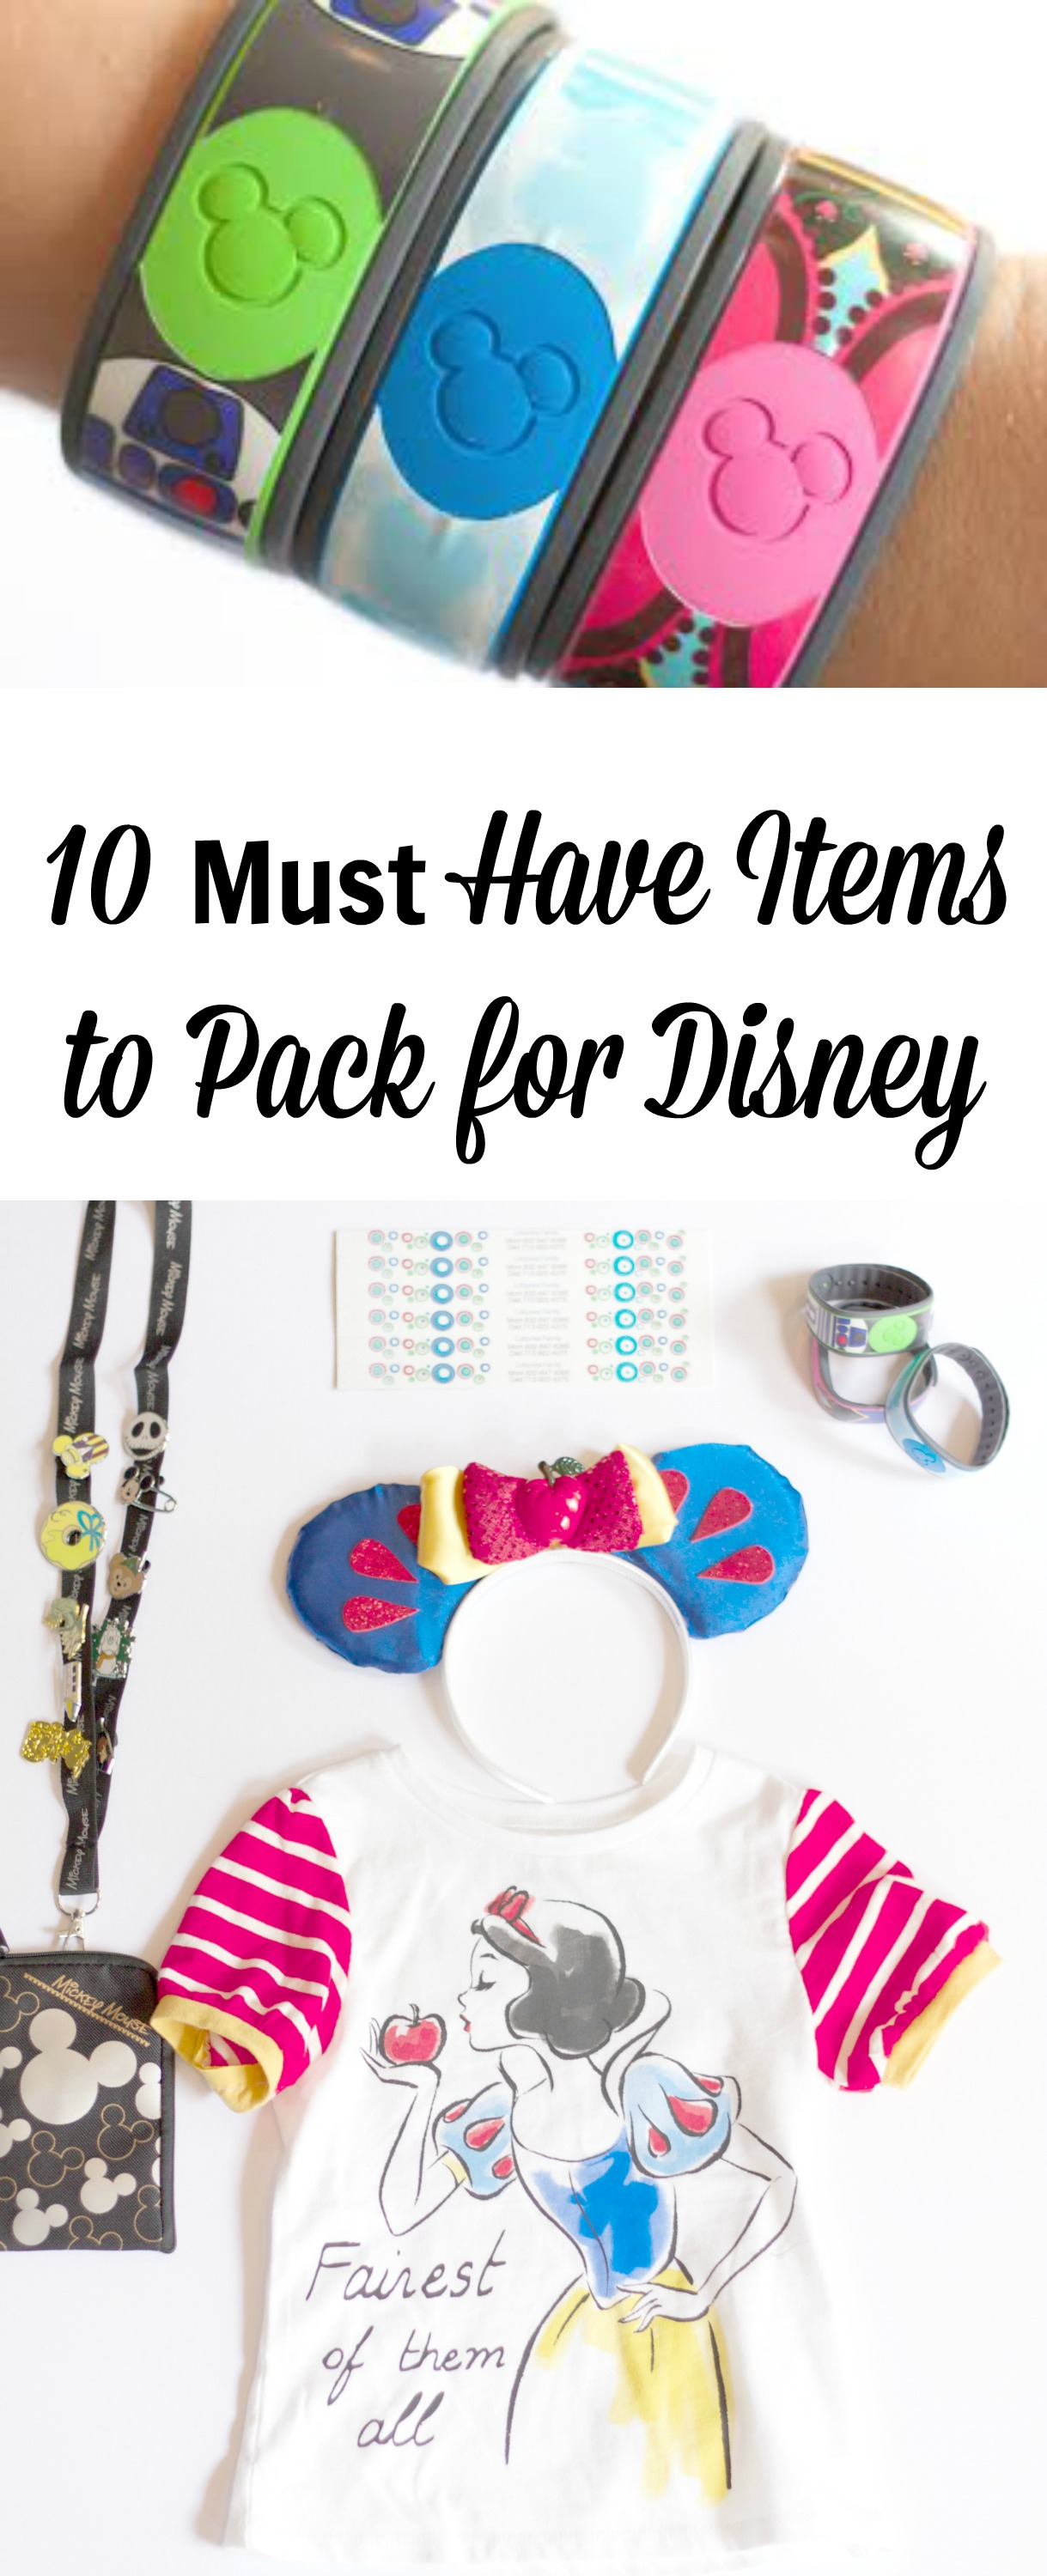 Must Have Items to Pack for Disney